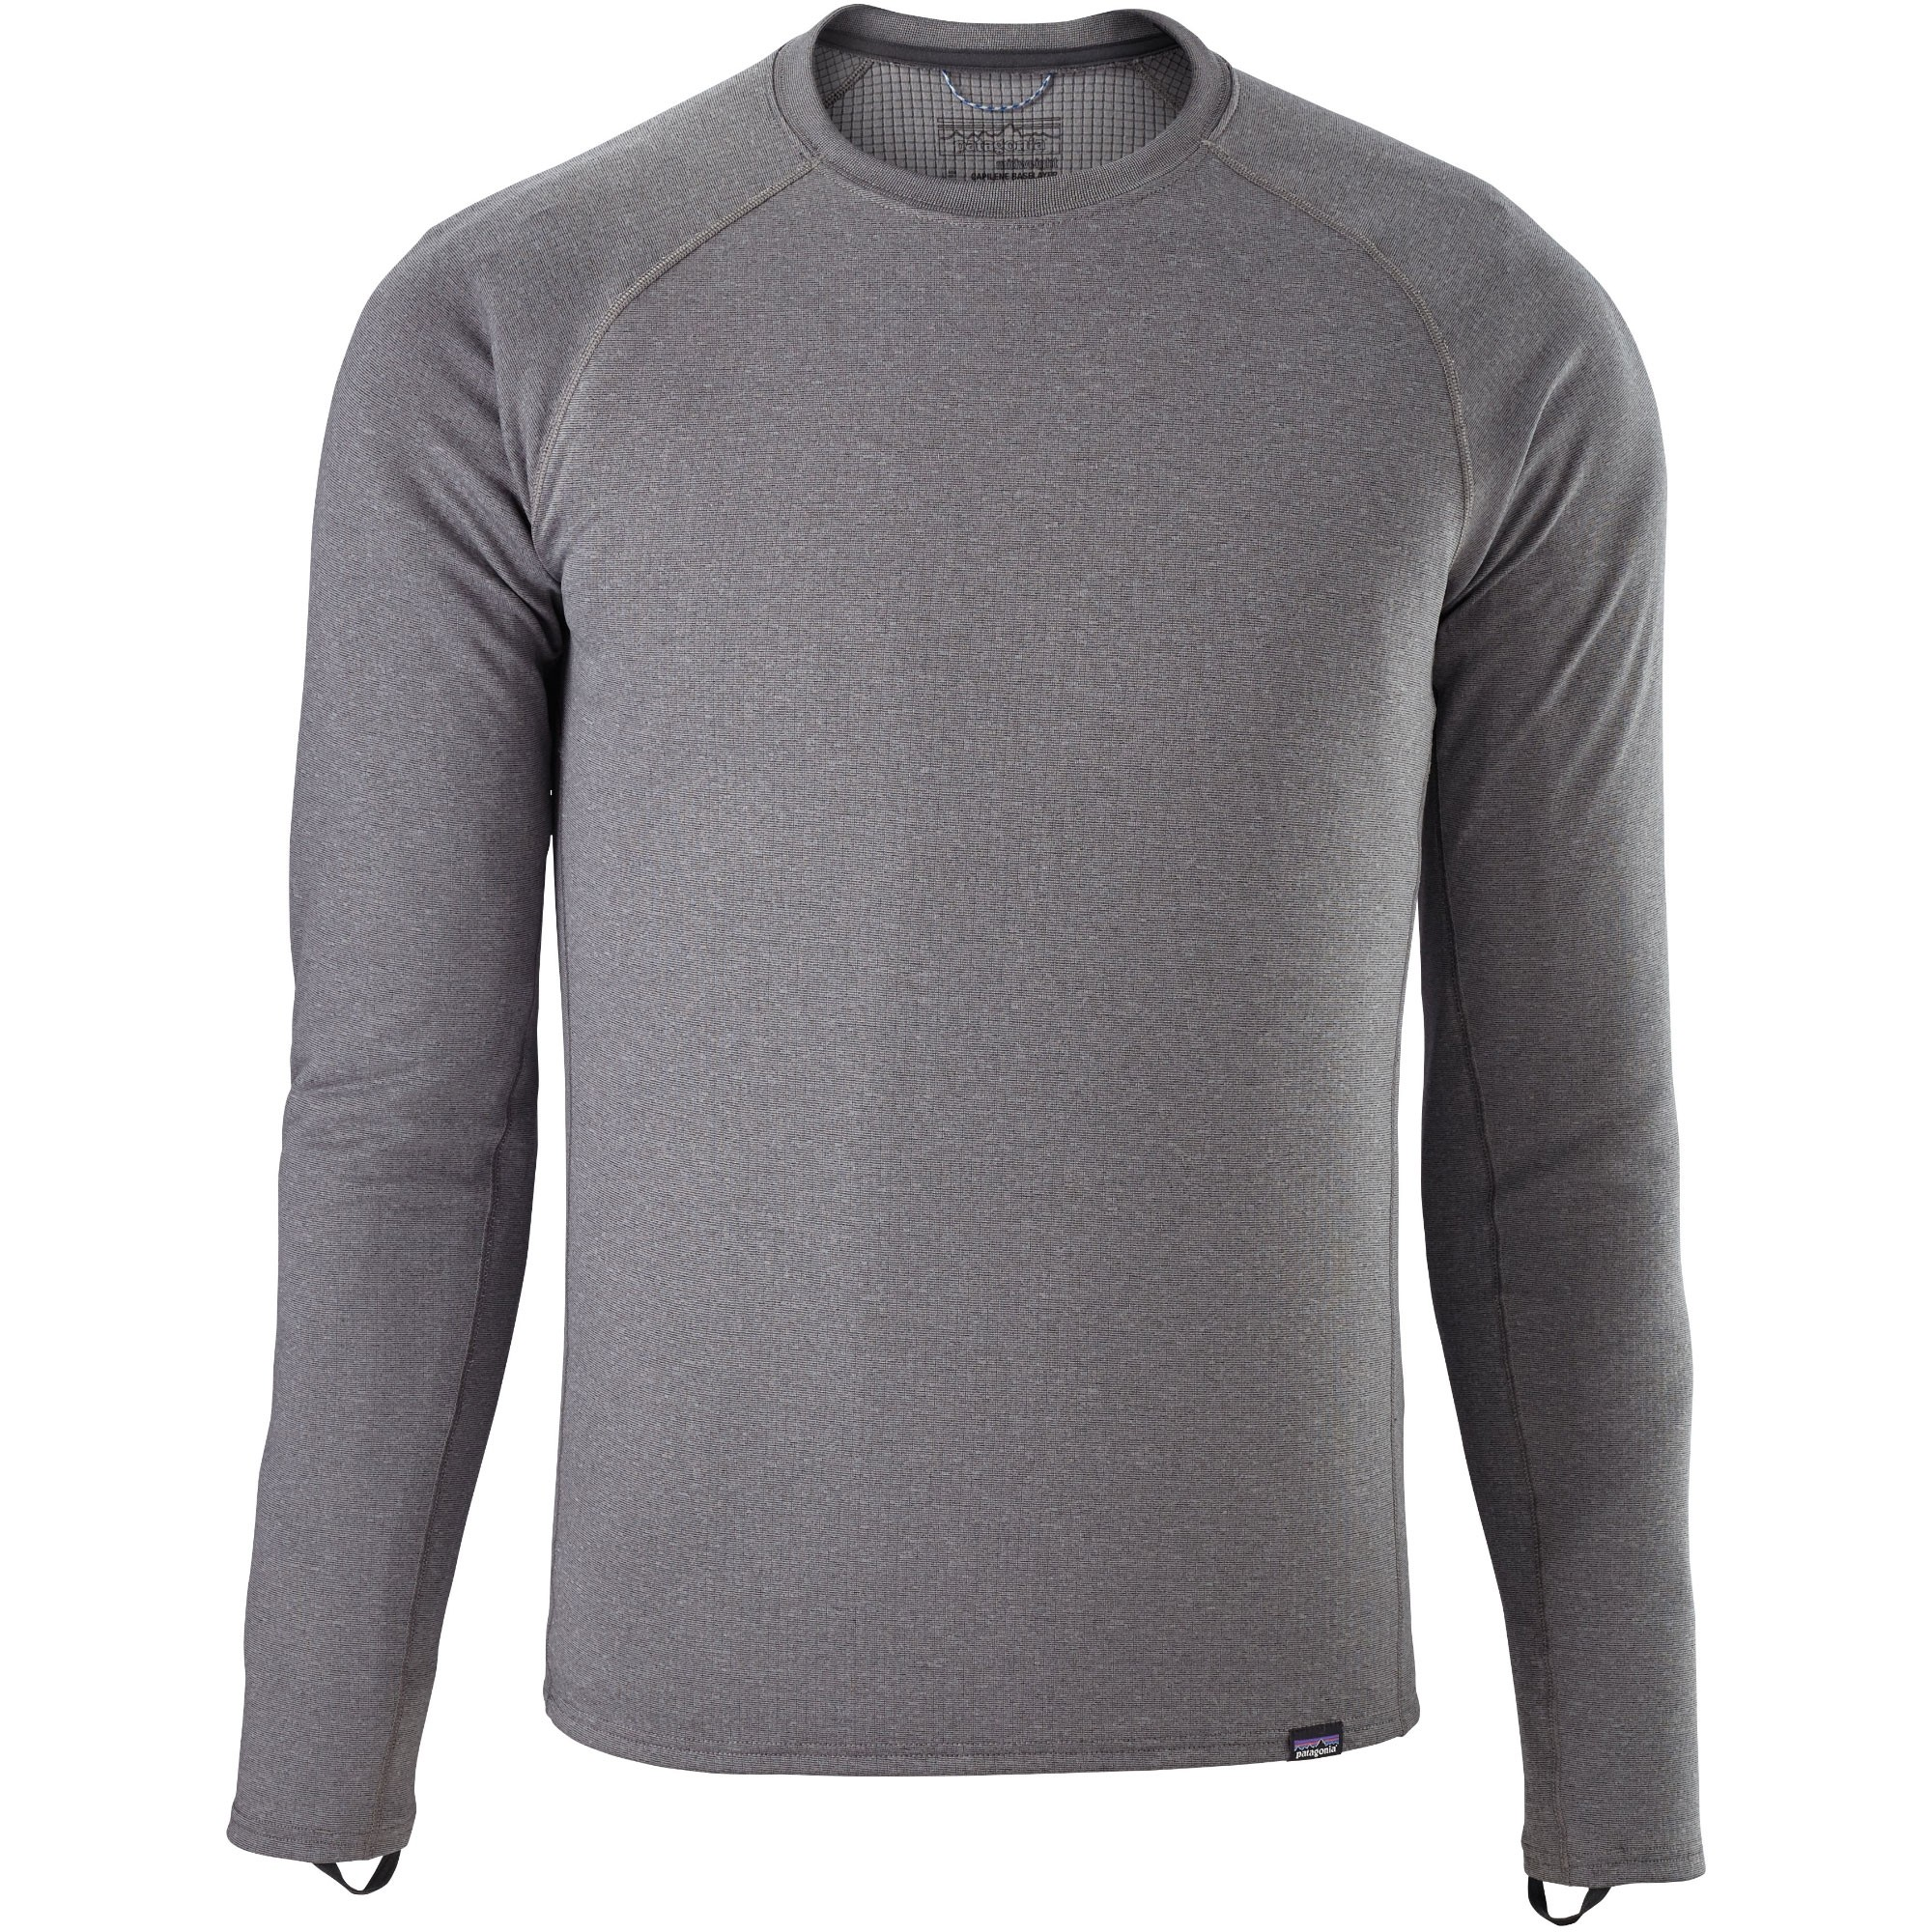 Patagonia Capilene Midweight Crew Men's Baselayer - Forge Grey/Feather Grey X-Dye